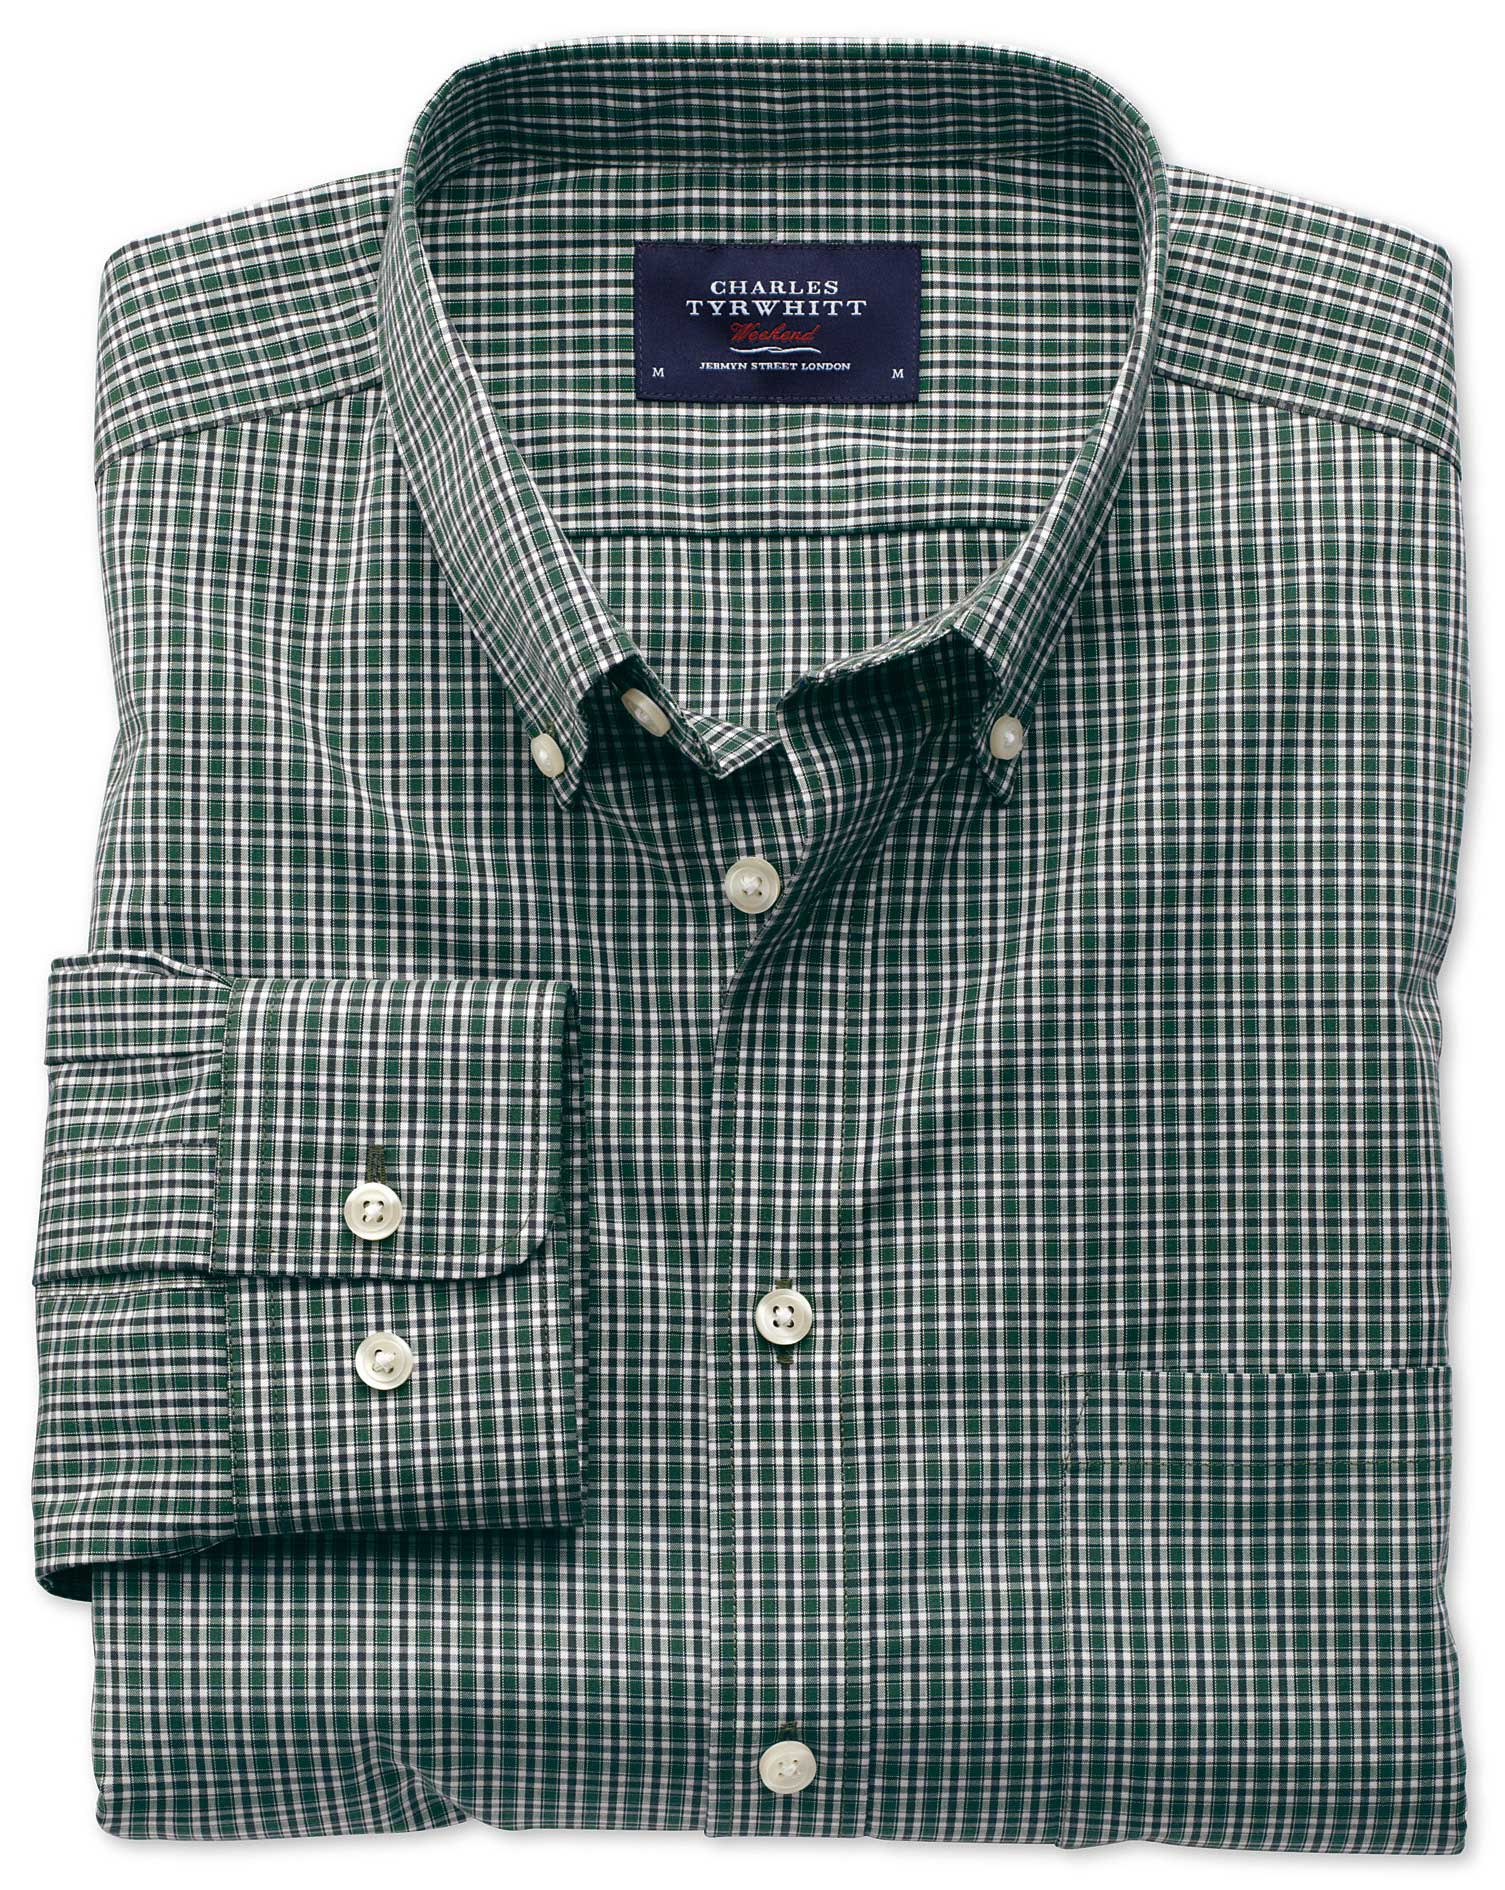 Extra Slim Fit Non-Iron Poplin Green and Blue Check Cotton Shirt Single Cuff Size XS by Charles Tyrw